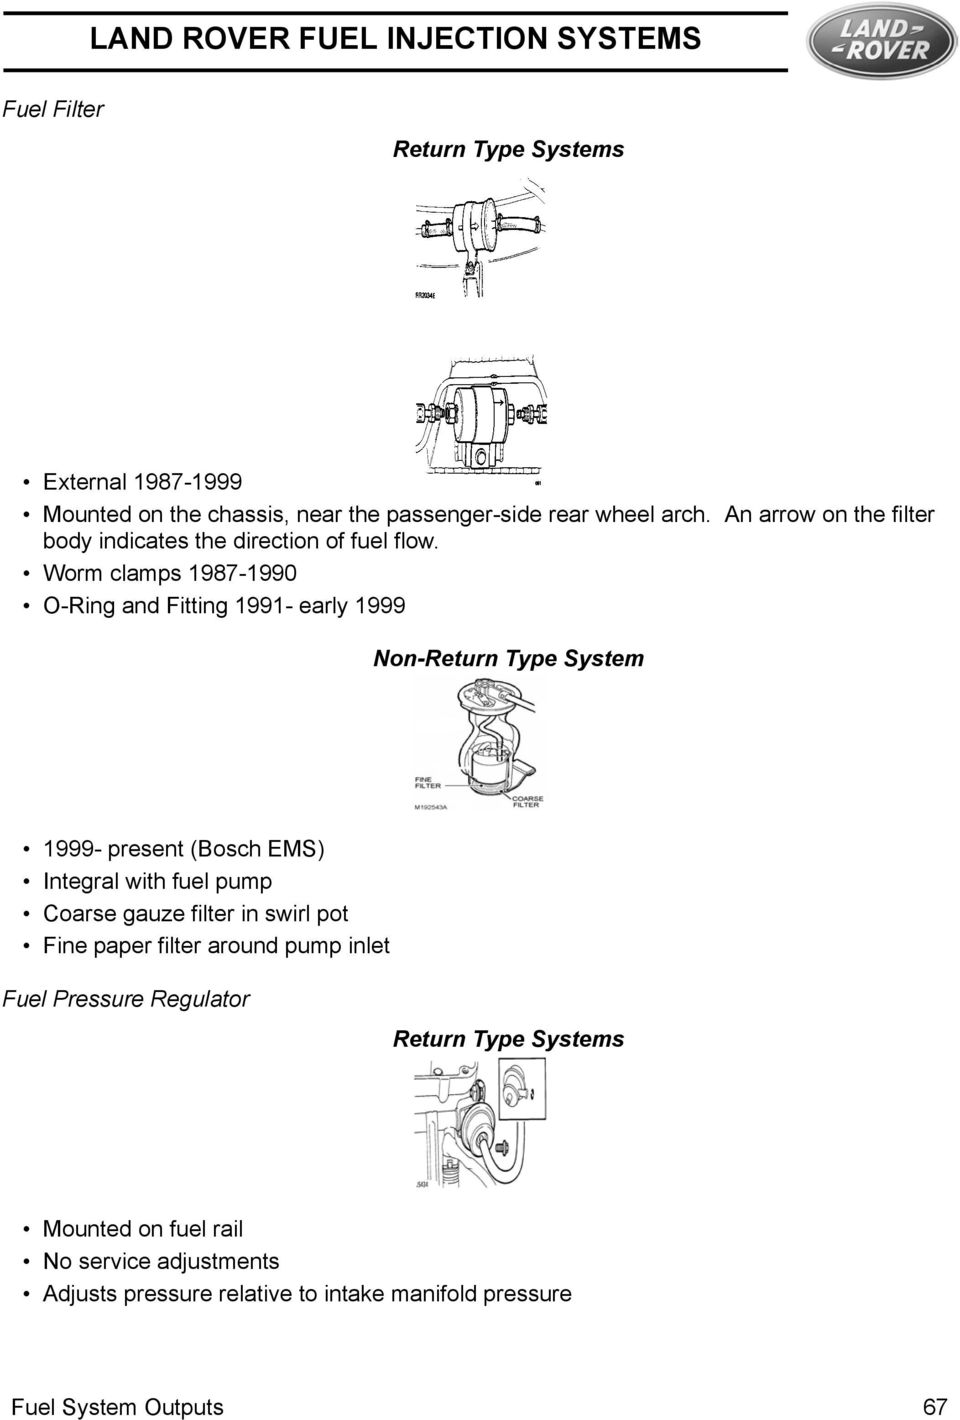 Land Rover Fuel Injection Systems Pdf 200 Eclipse Filter Location Worm Clamps 1987 1990 O Ring And Fitting 1991 Early 1999 Non